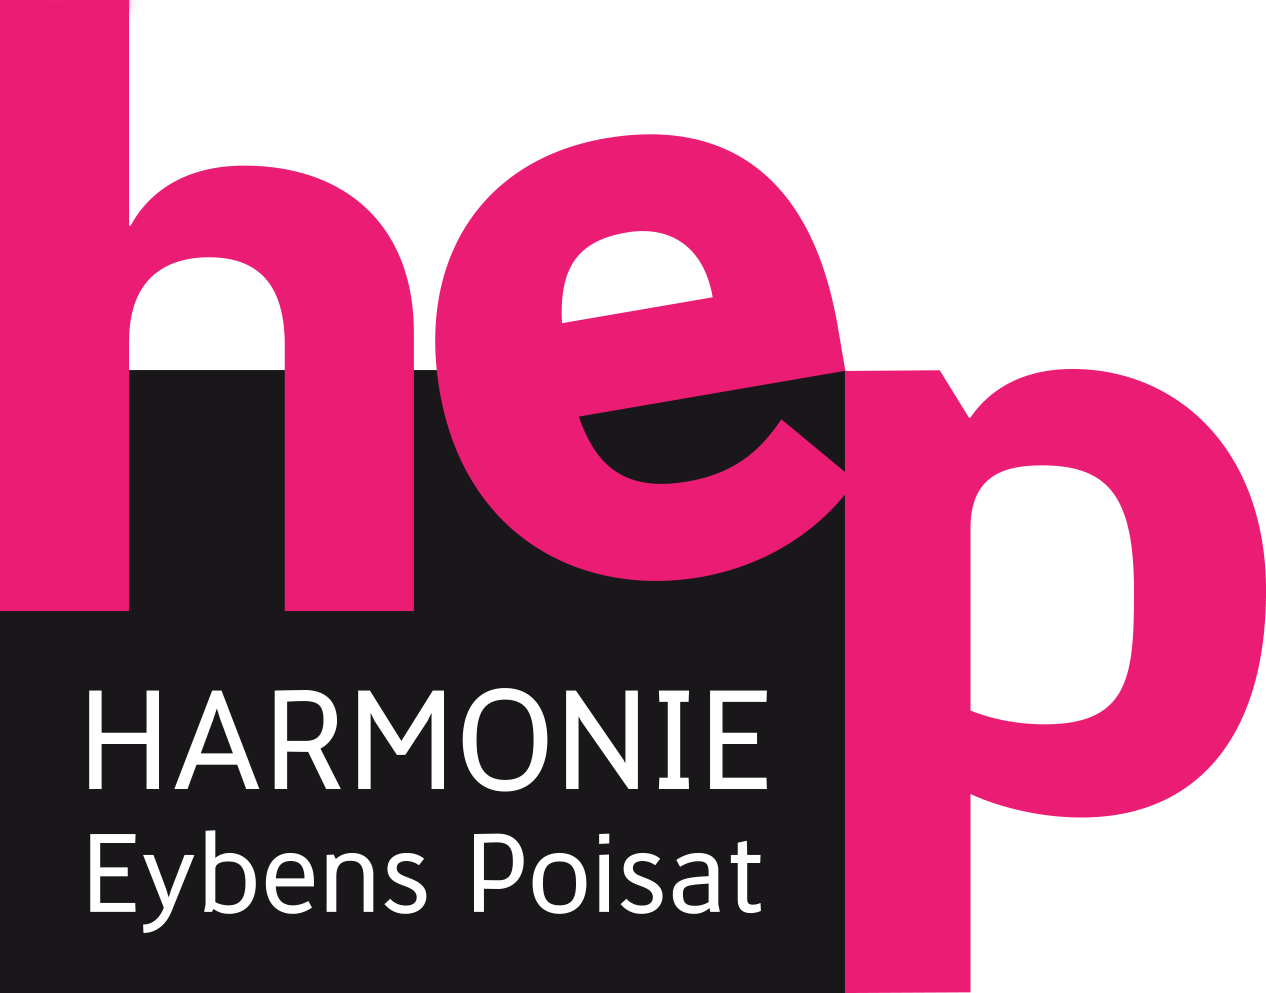 Association - Harmonie Eybens Poisat